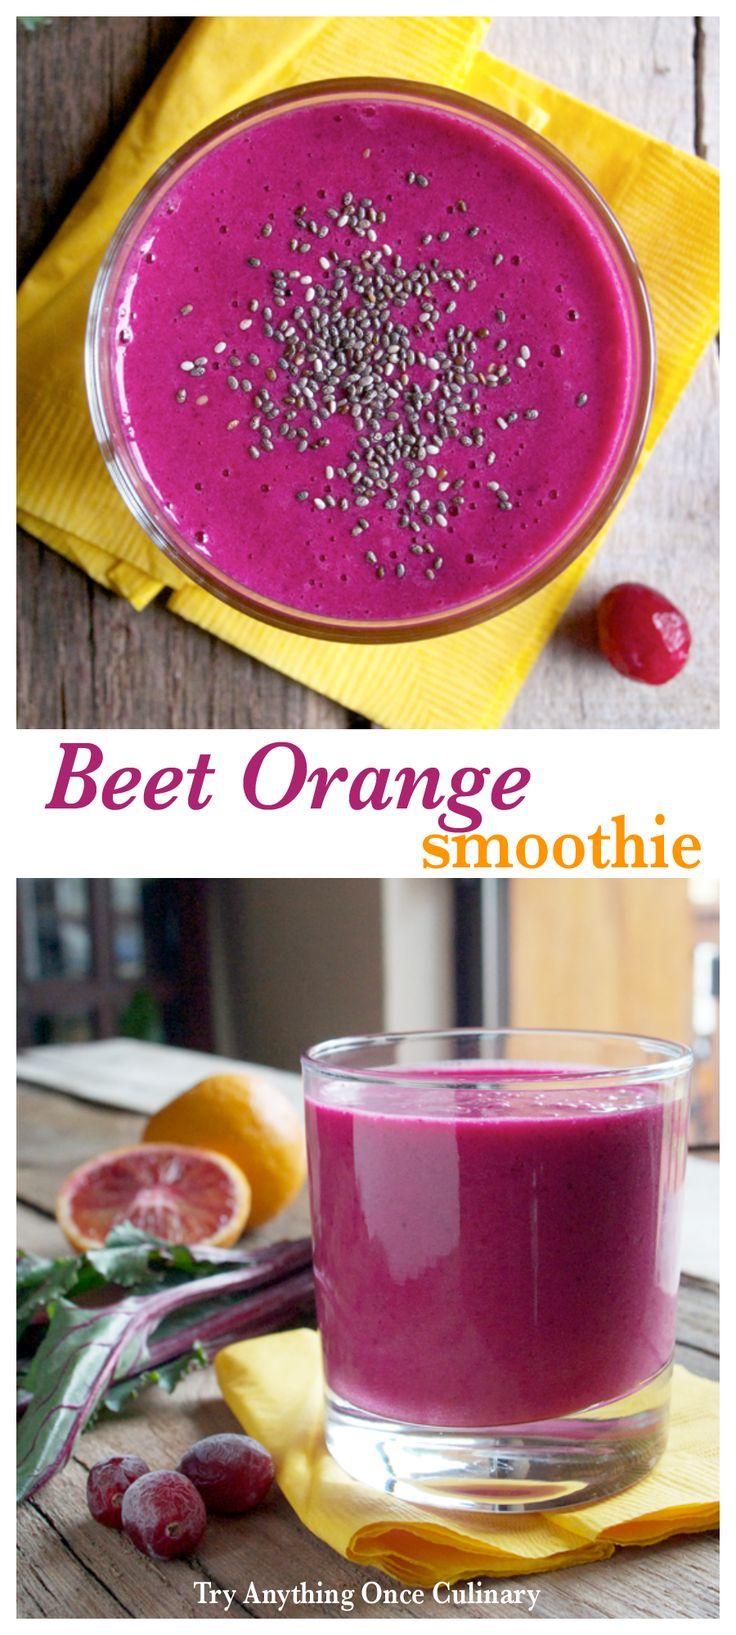 A Beet Orange Smoothie from tryanythingonceculinary.com is a bright and pleasant way to start the day! It's worth waking up for. Orange adds brightness and a little honey (or your favorite sweetener) enhances the beets natural sweetness. (@tryanything1)